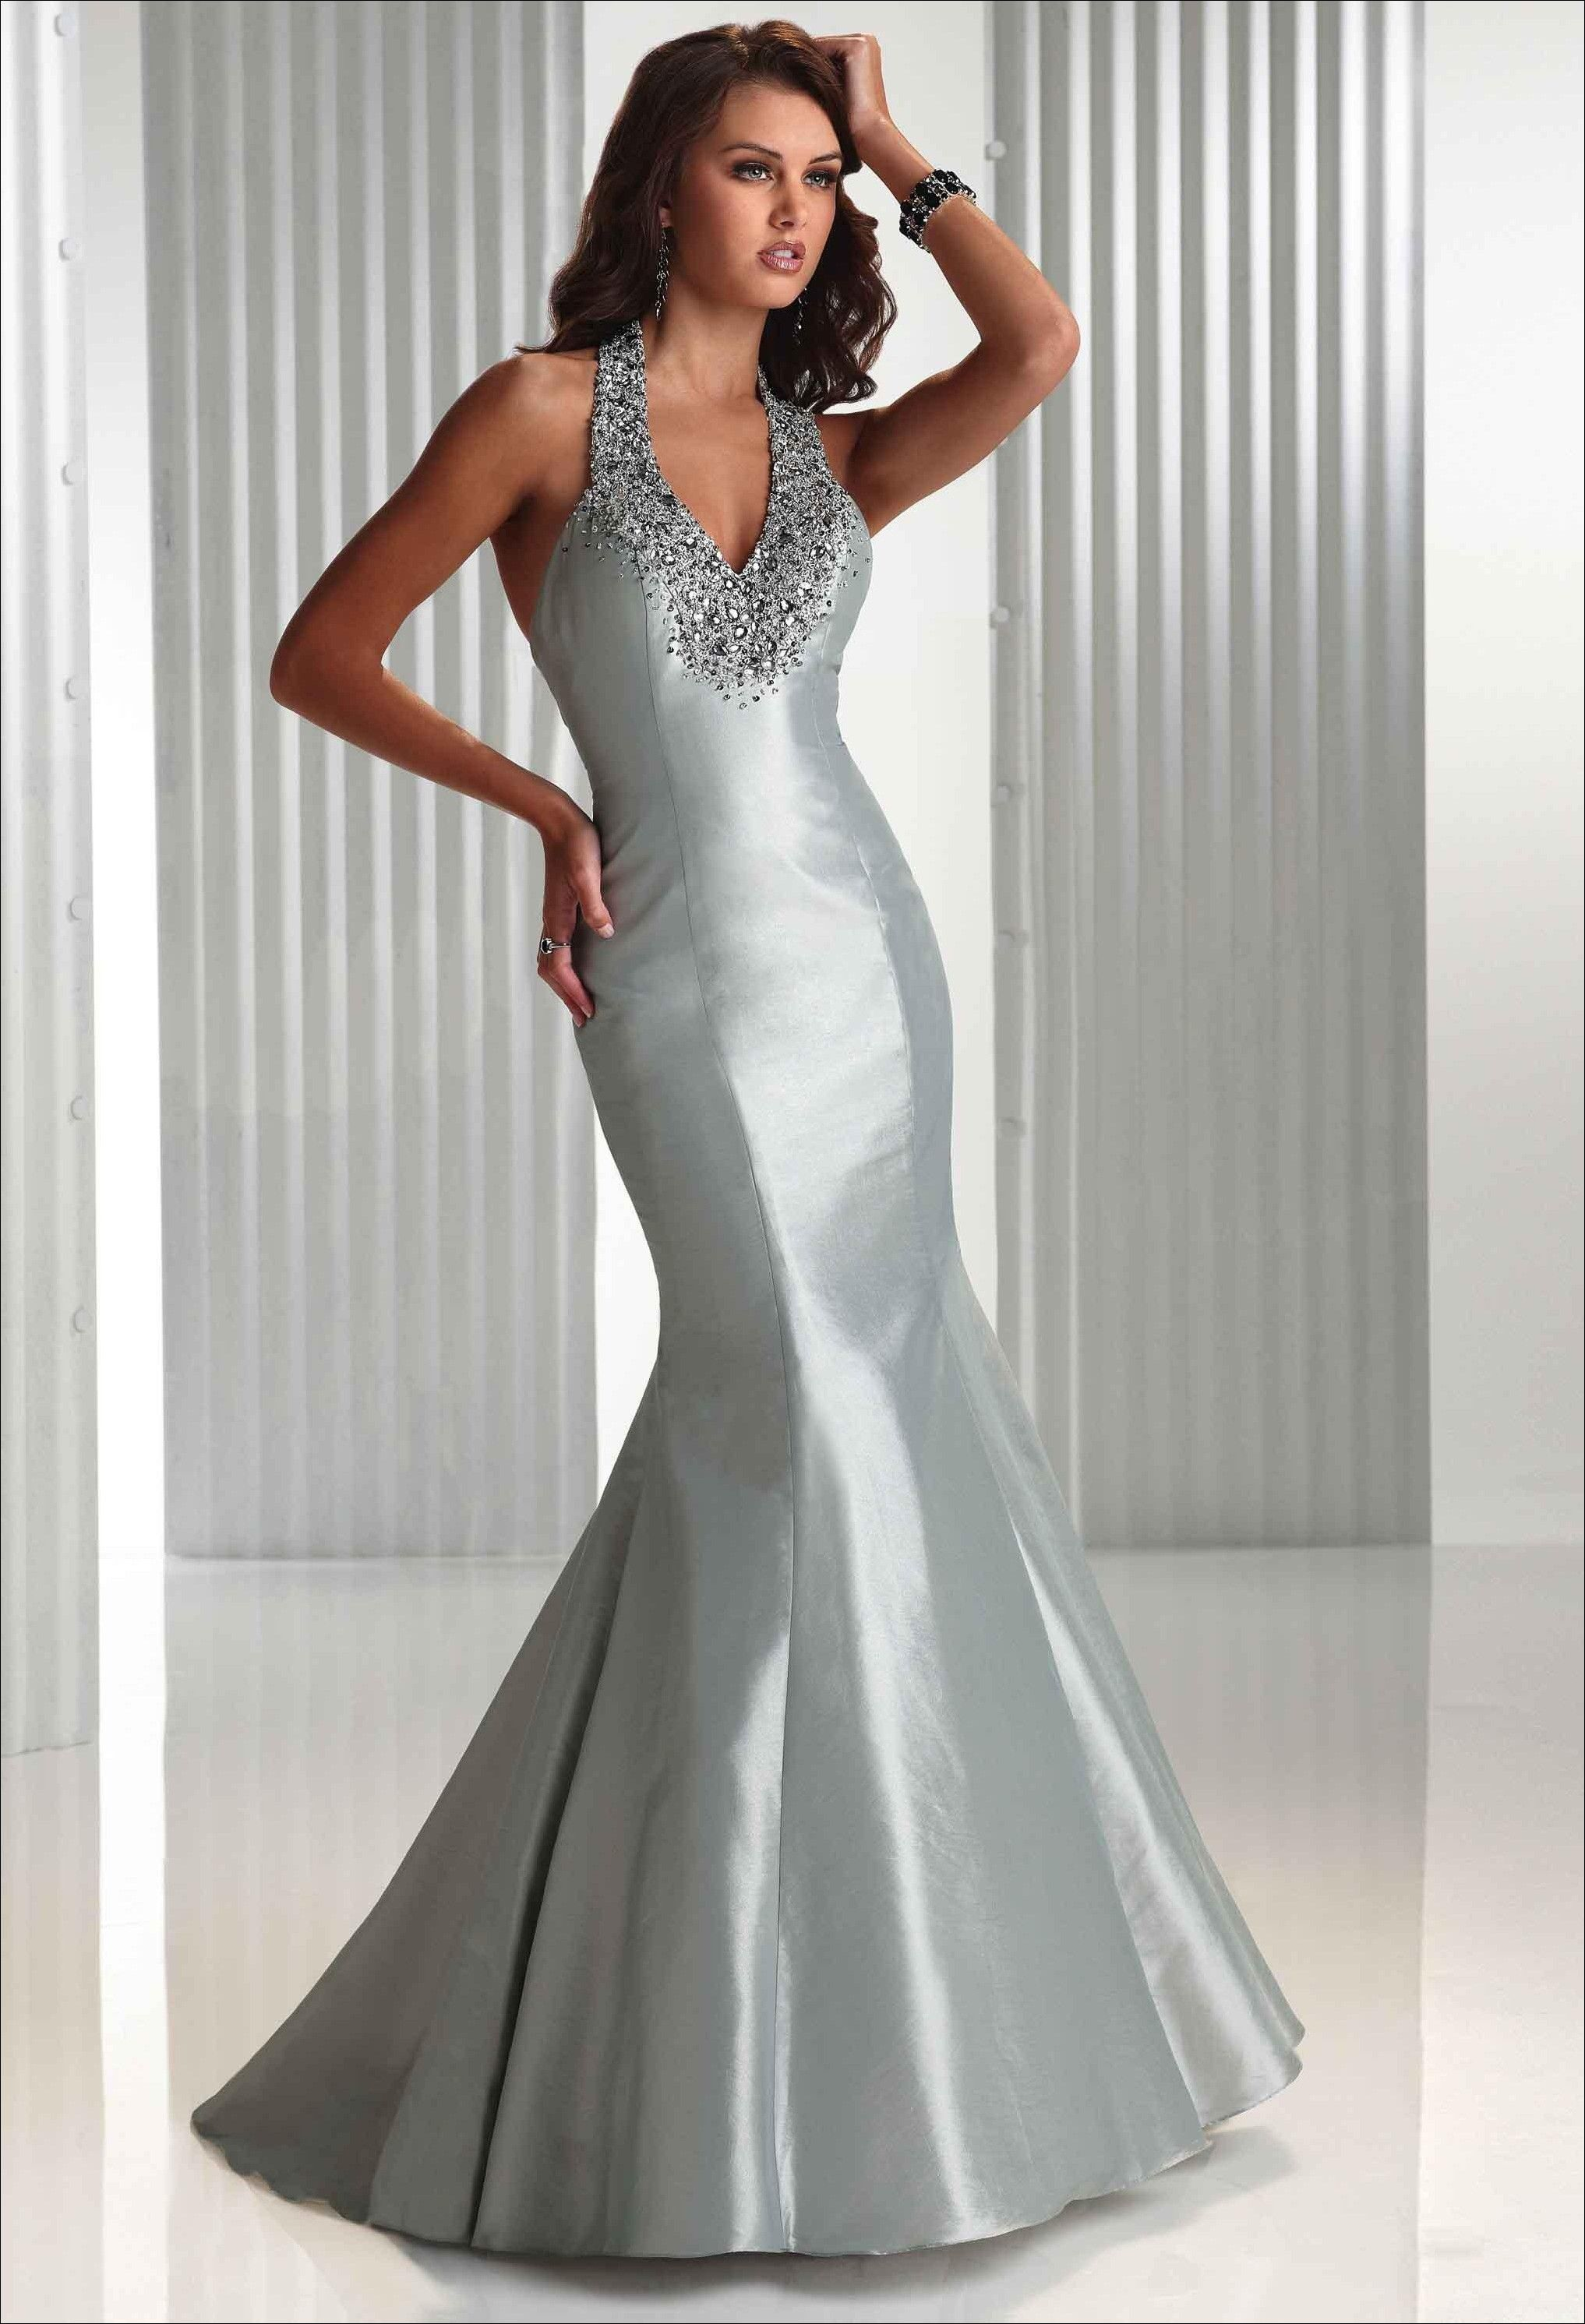 Wedding Silver Dresses silver wedding dresses images of reikian 10 best about bridesmaid dress on pinterest satin and a dress